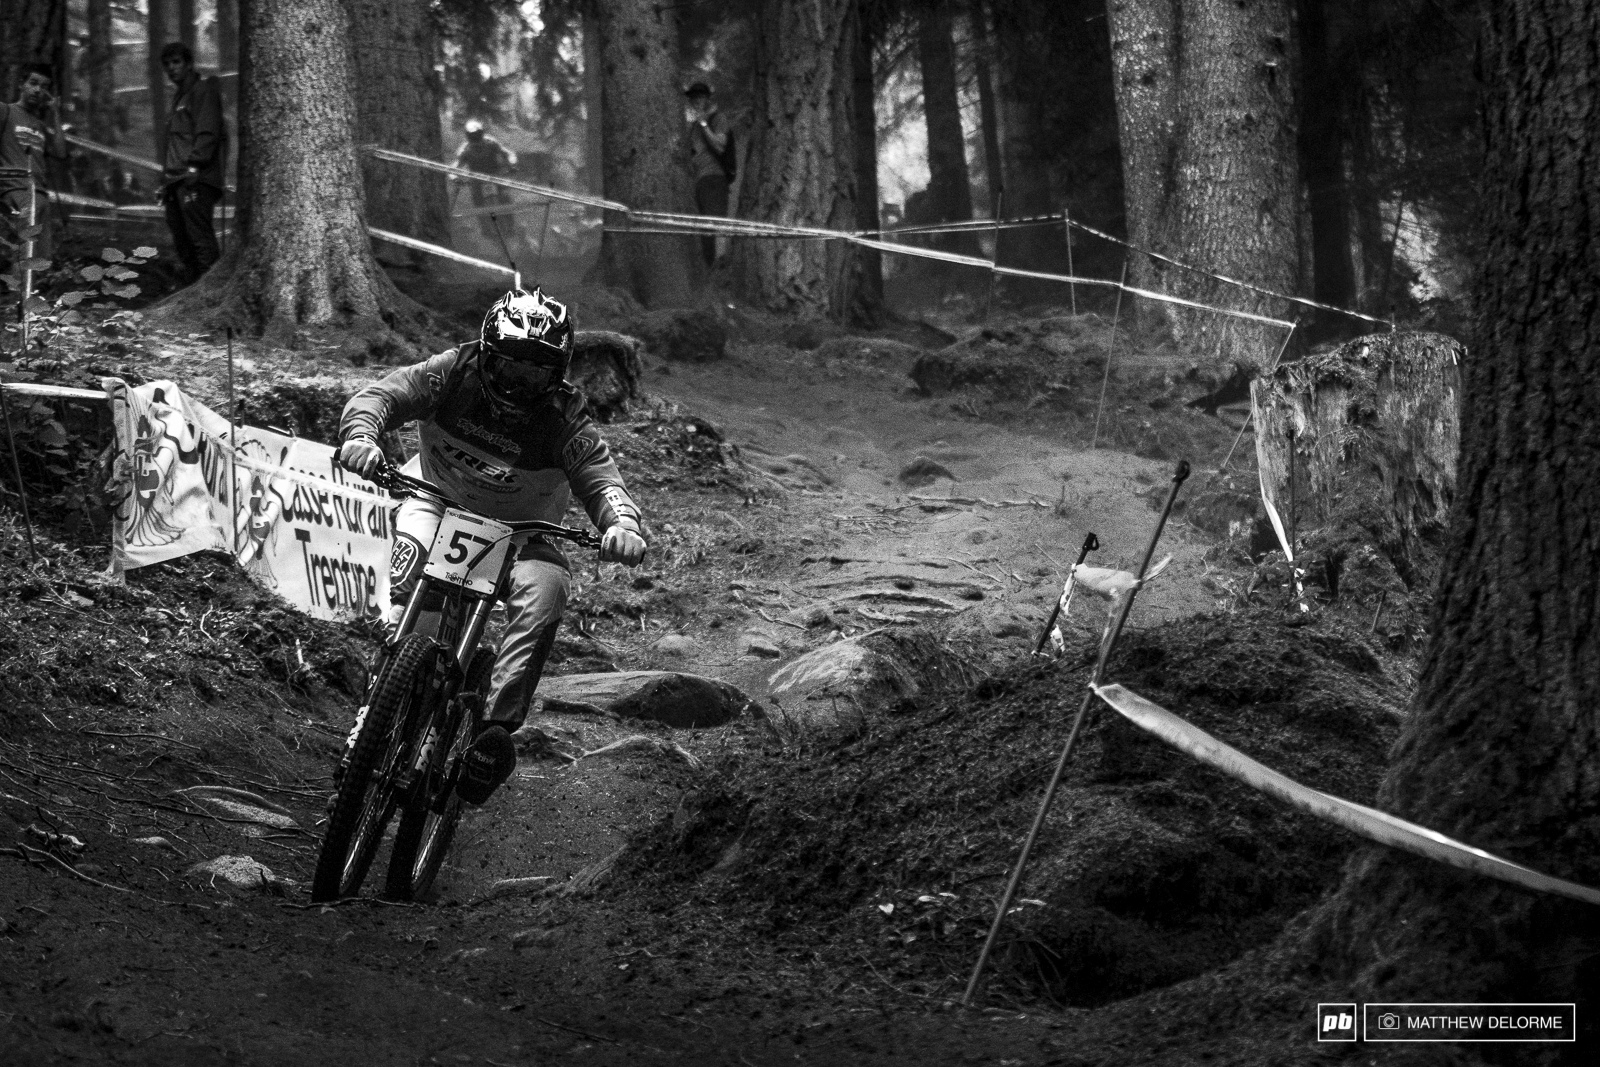 Charlie Harrison was 19th fastest despite a bad crash yesterday and a hurt shoulder.